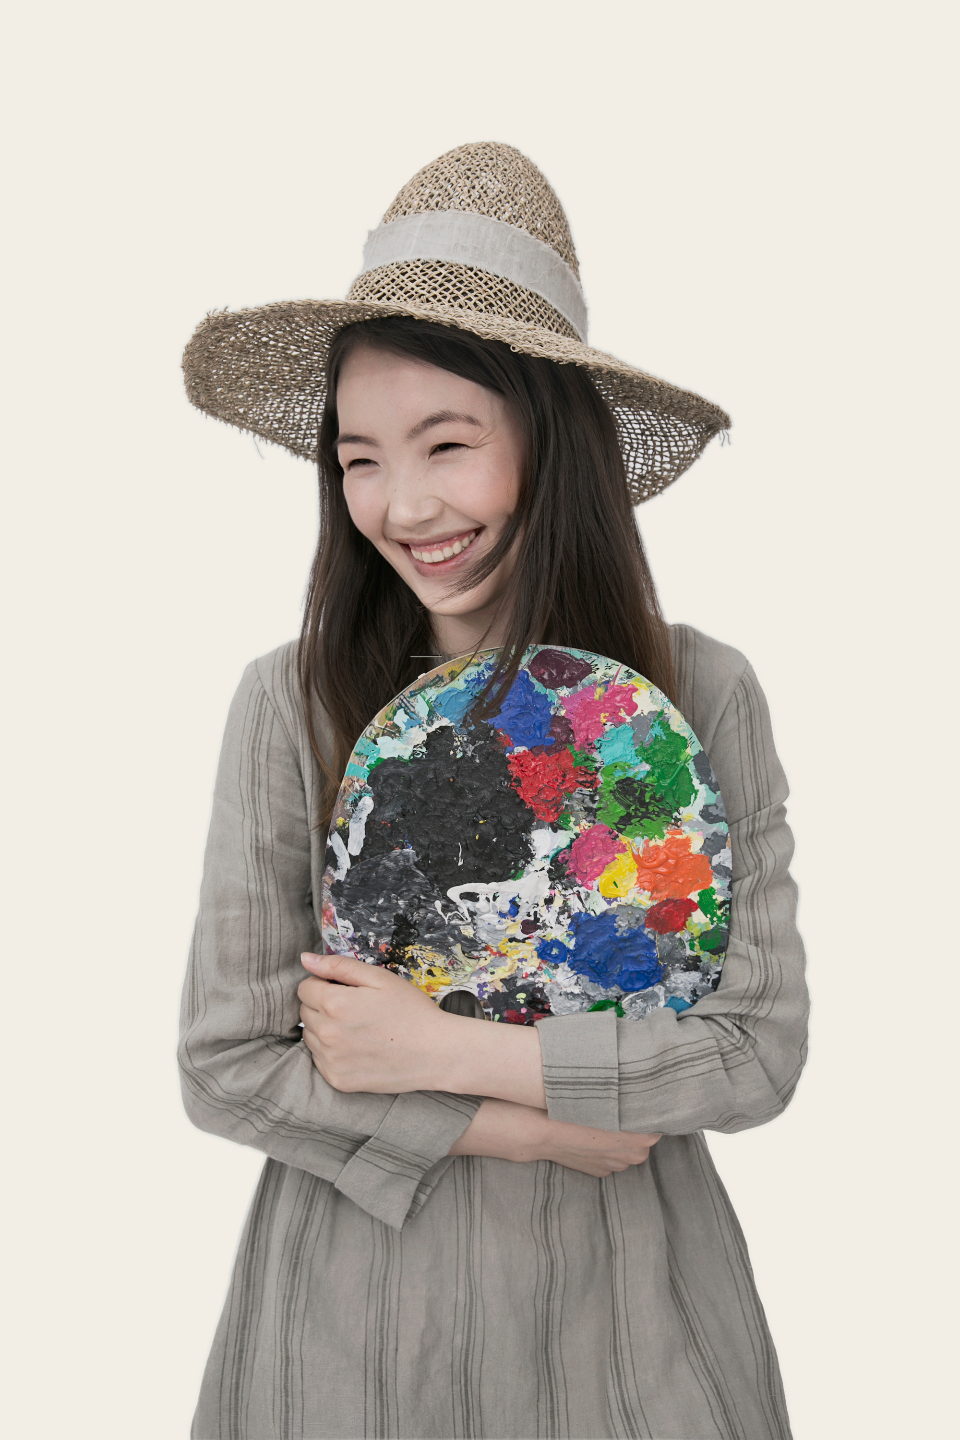 happy smile woman paint palette asian girl people art smiling laughing laughter fashion clothes hat trendy